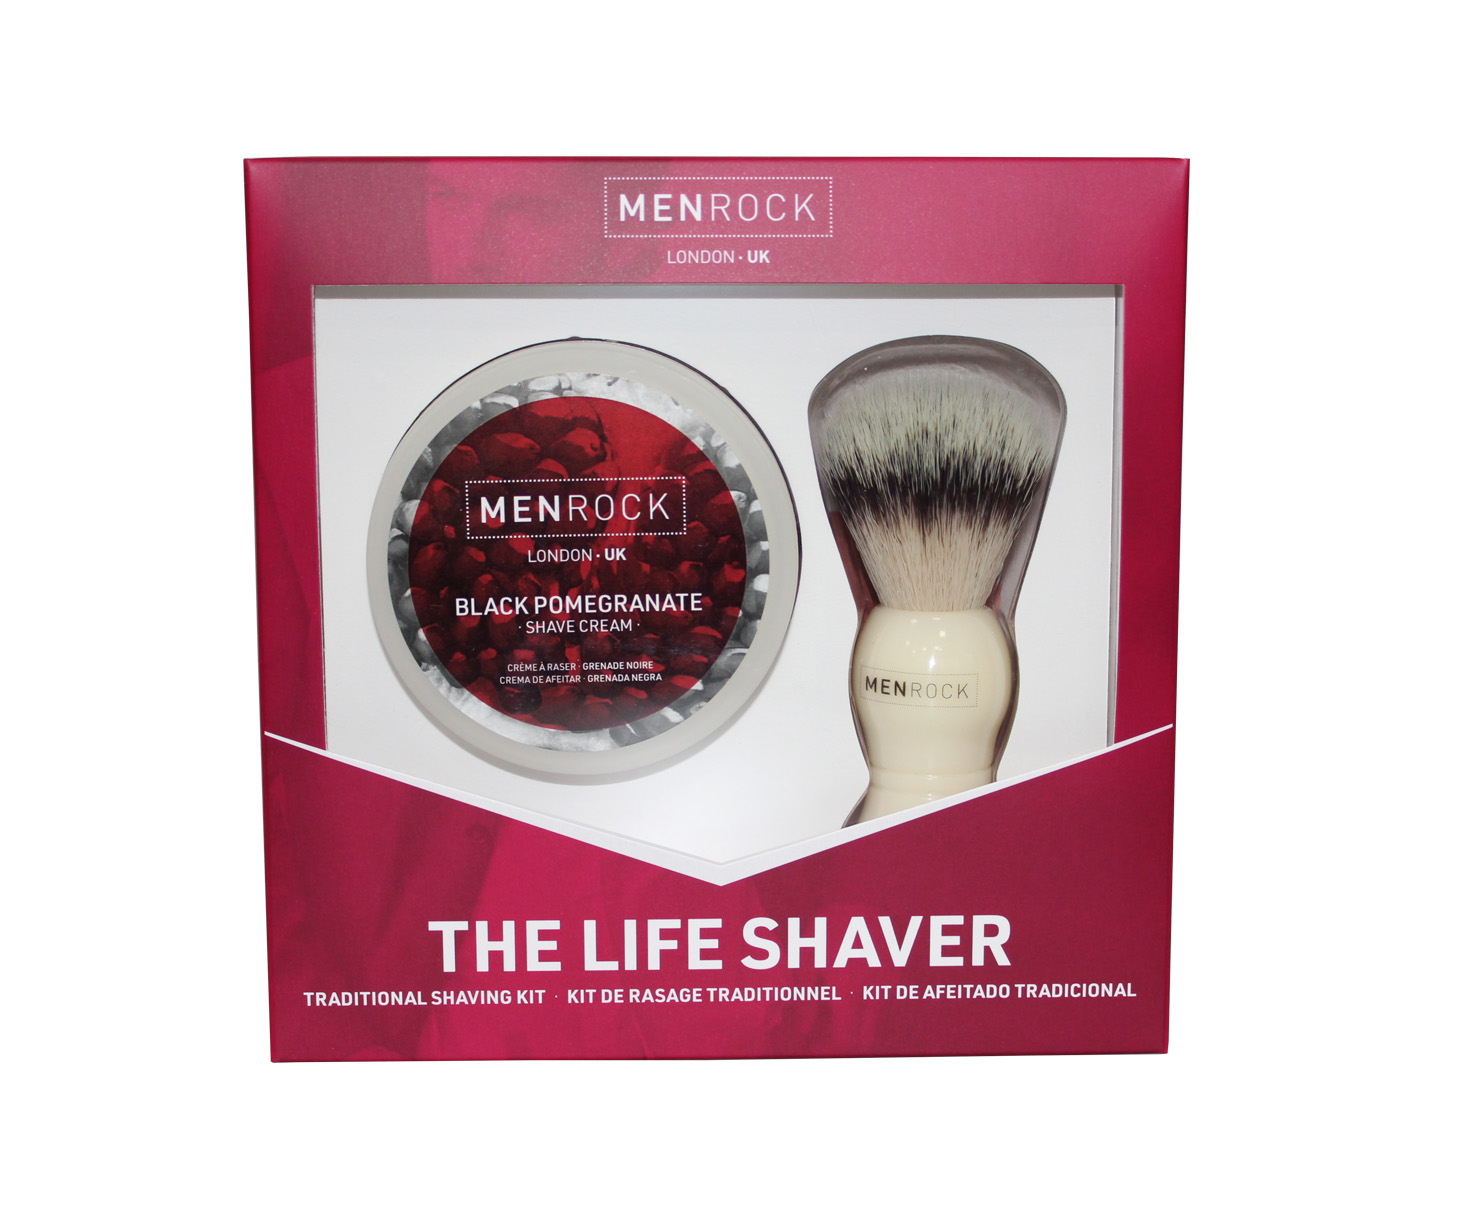 MENROCK The Life Shaver Black Pomegranate SET